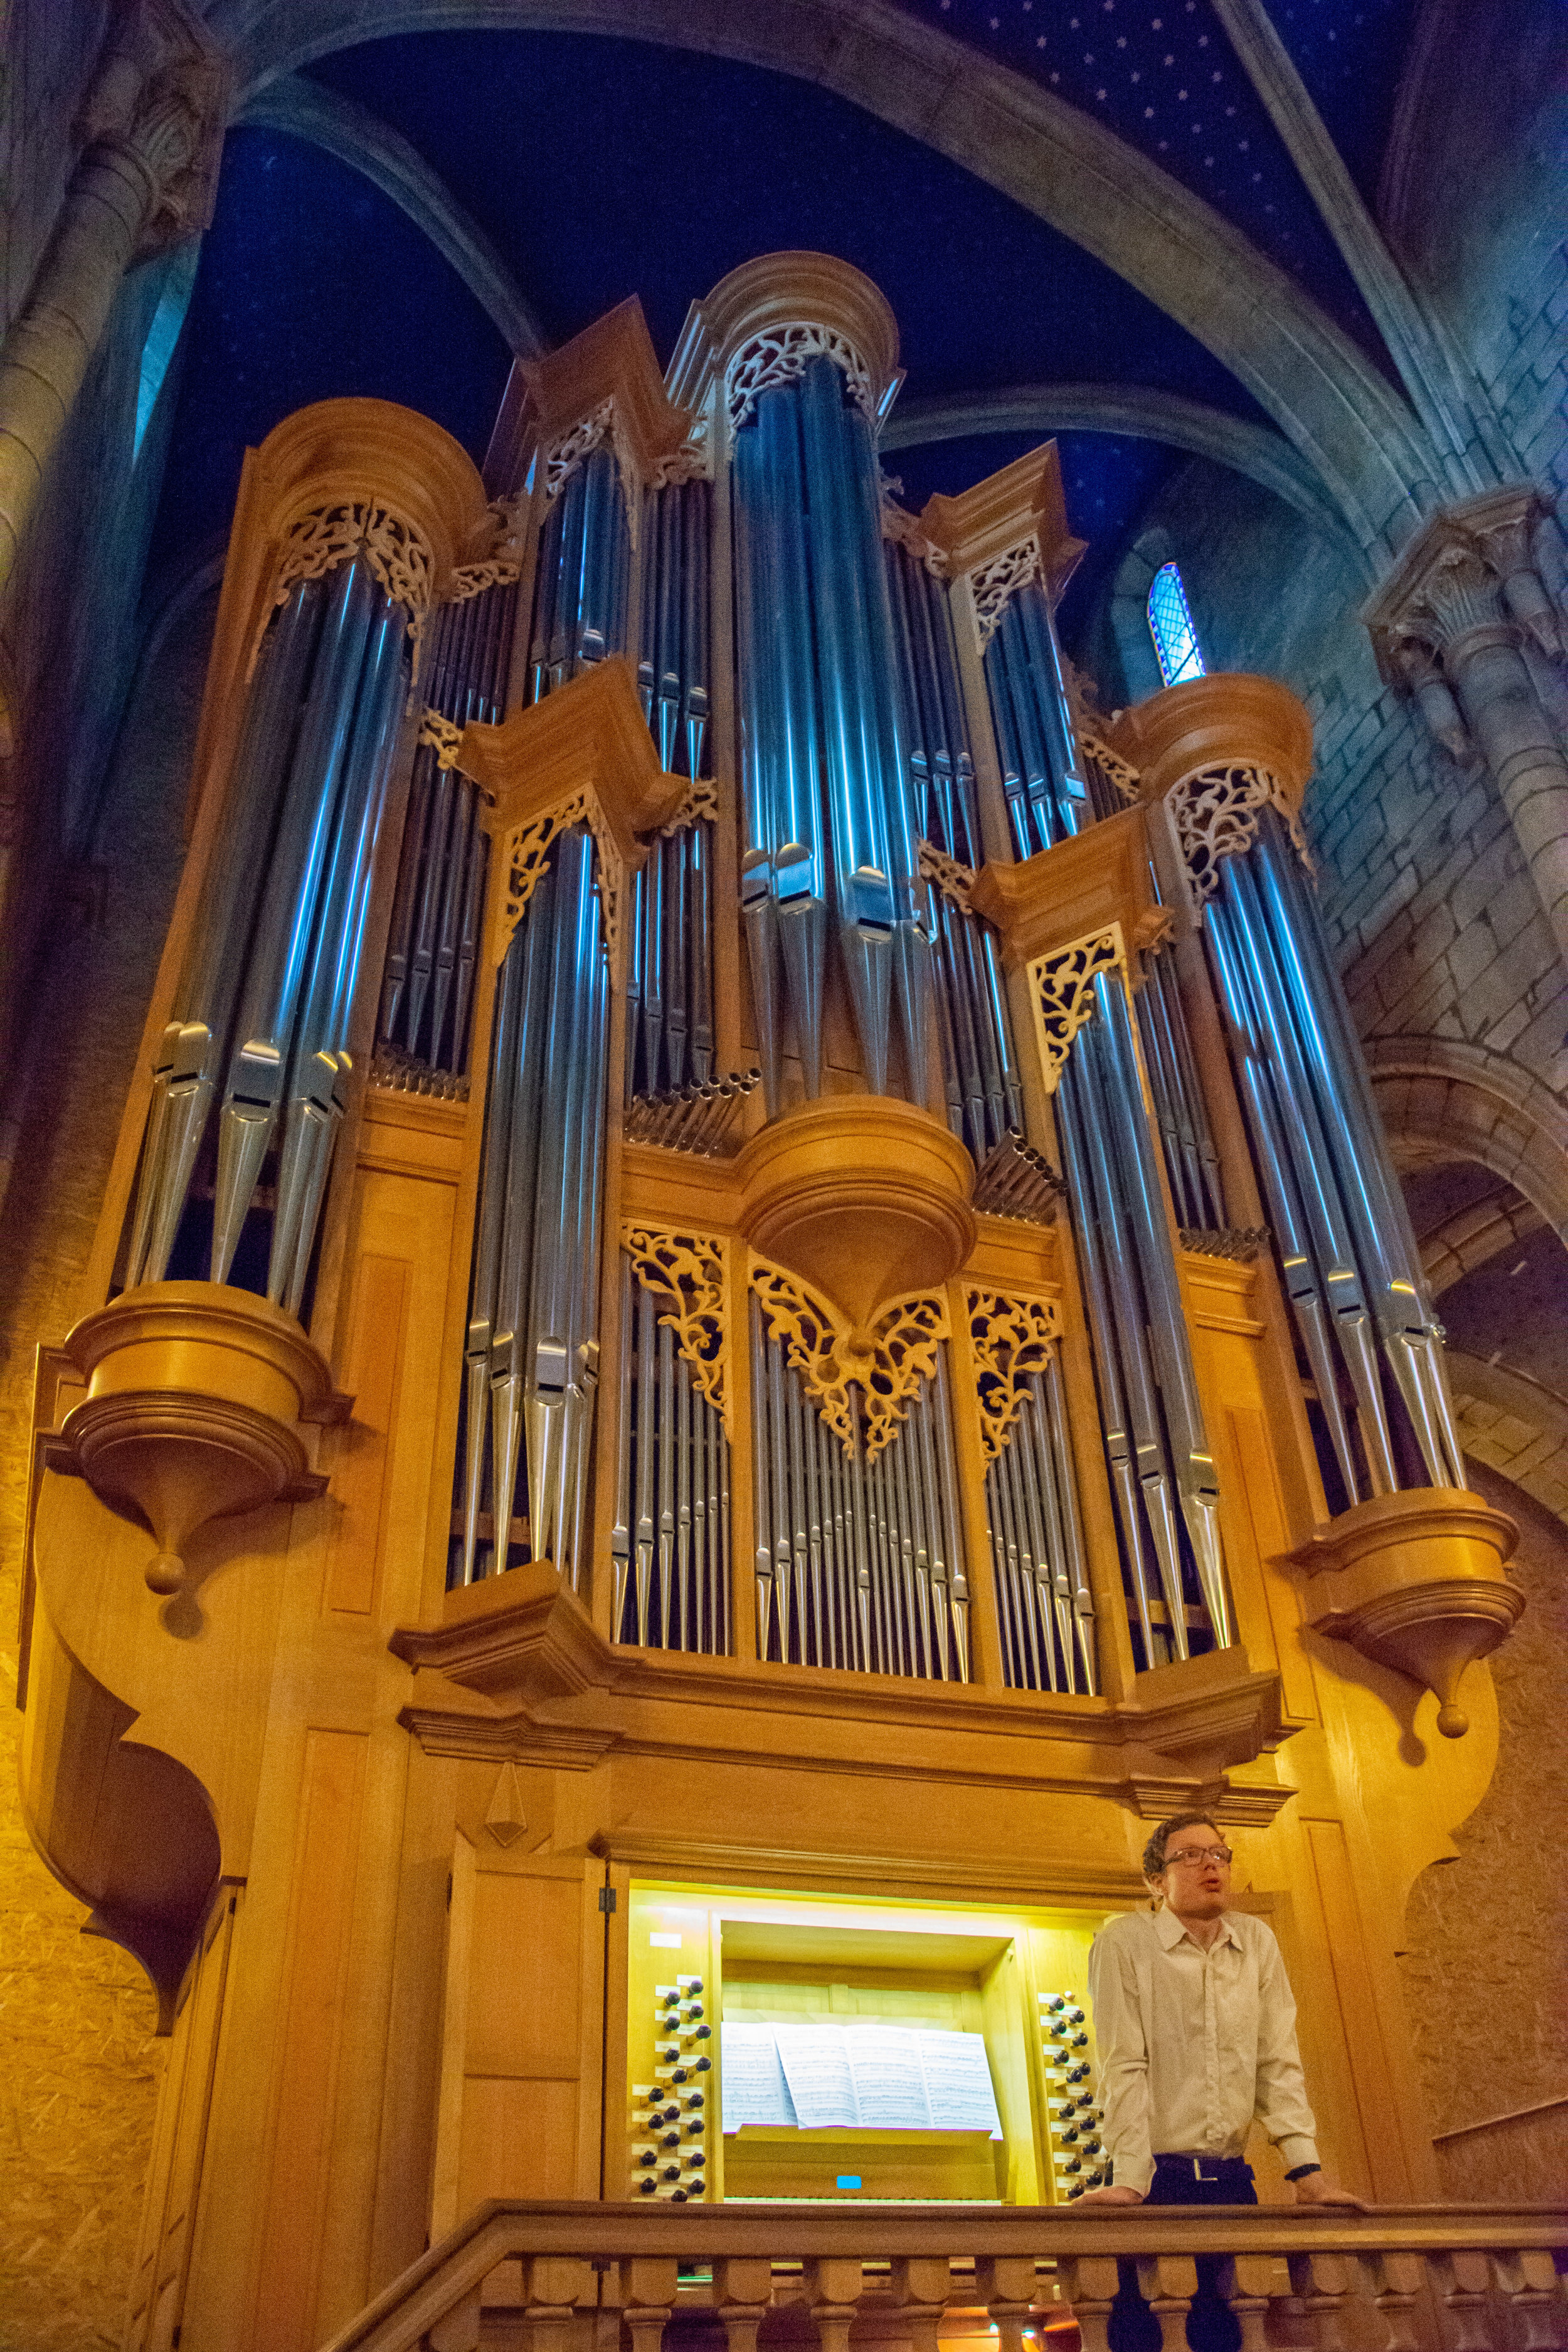 The Sound of the Organ